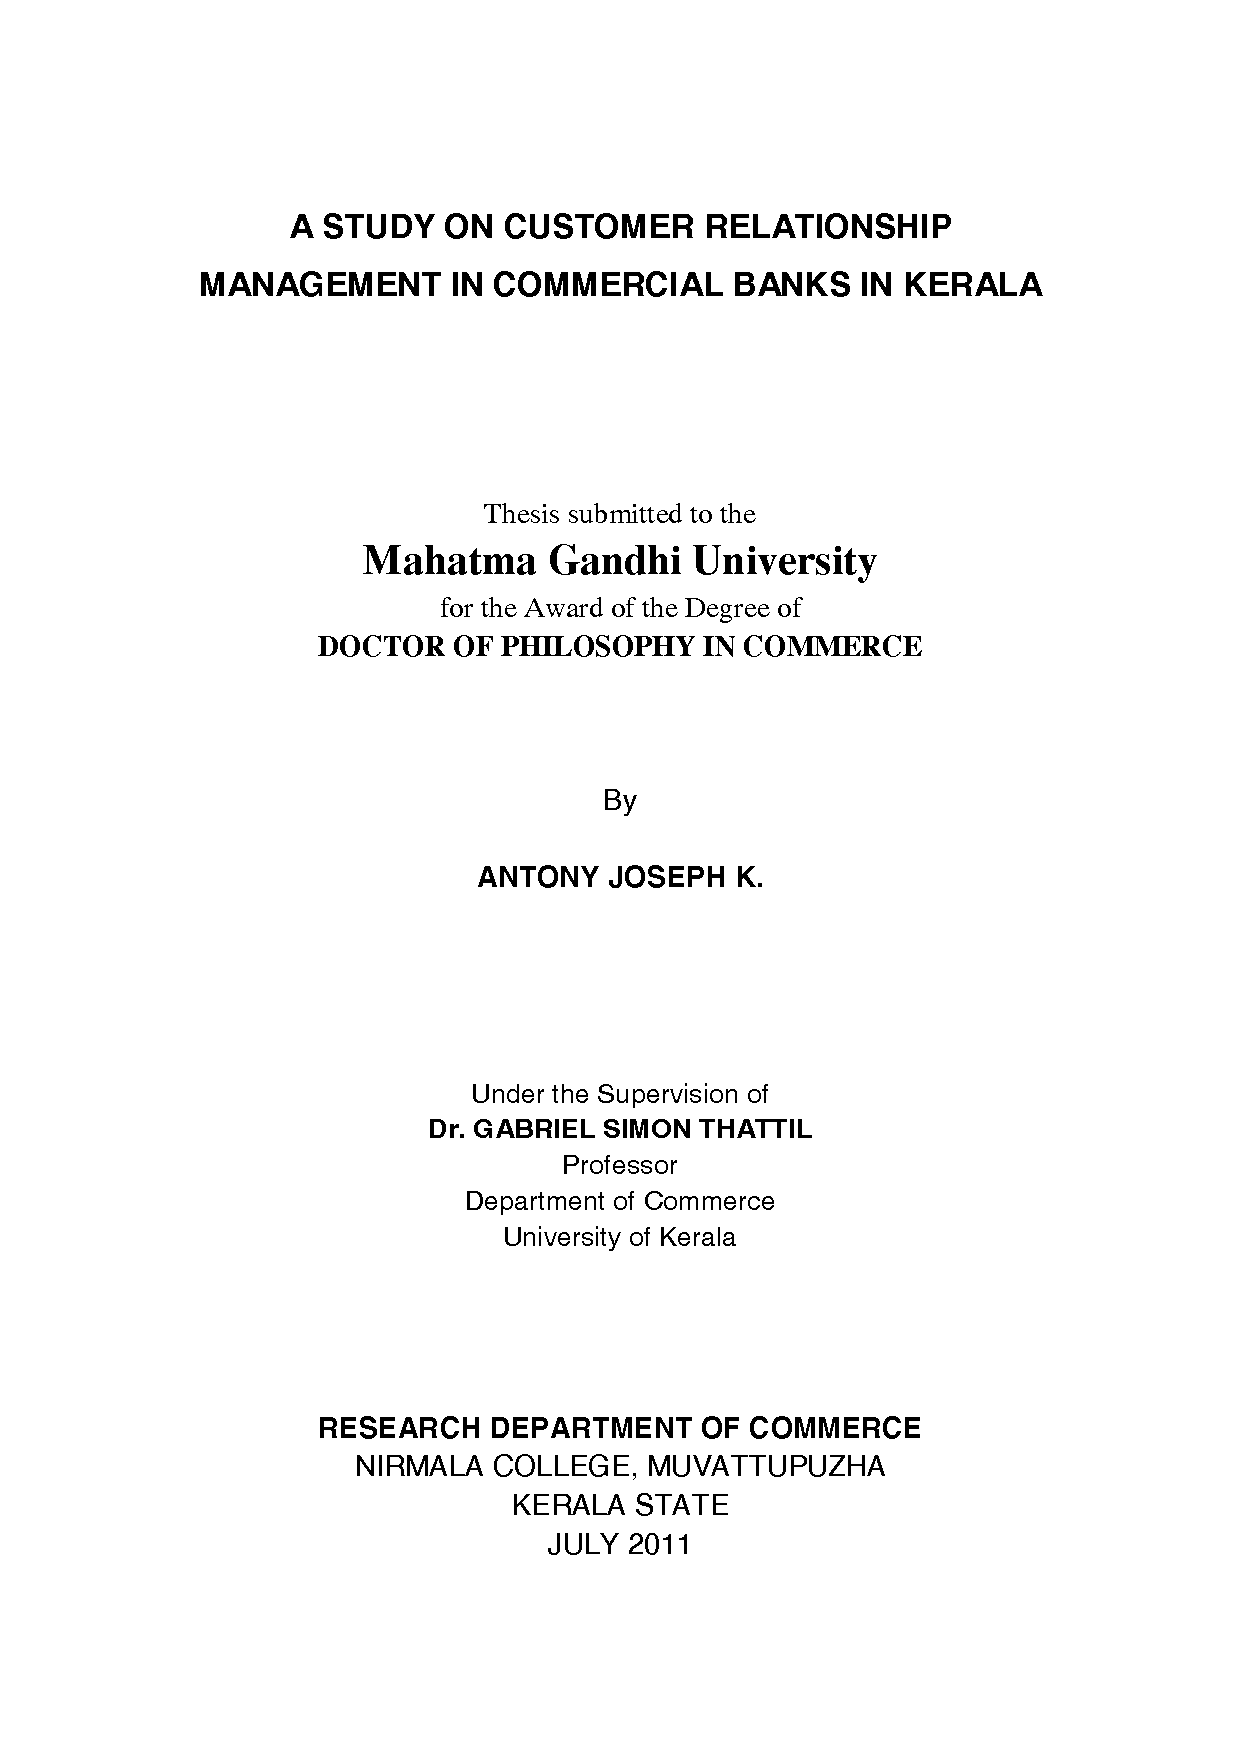 sample thesis on customer relationship management